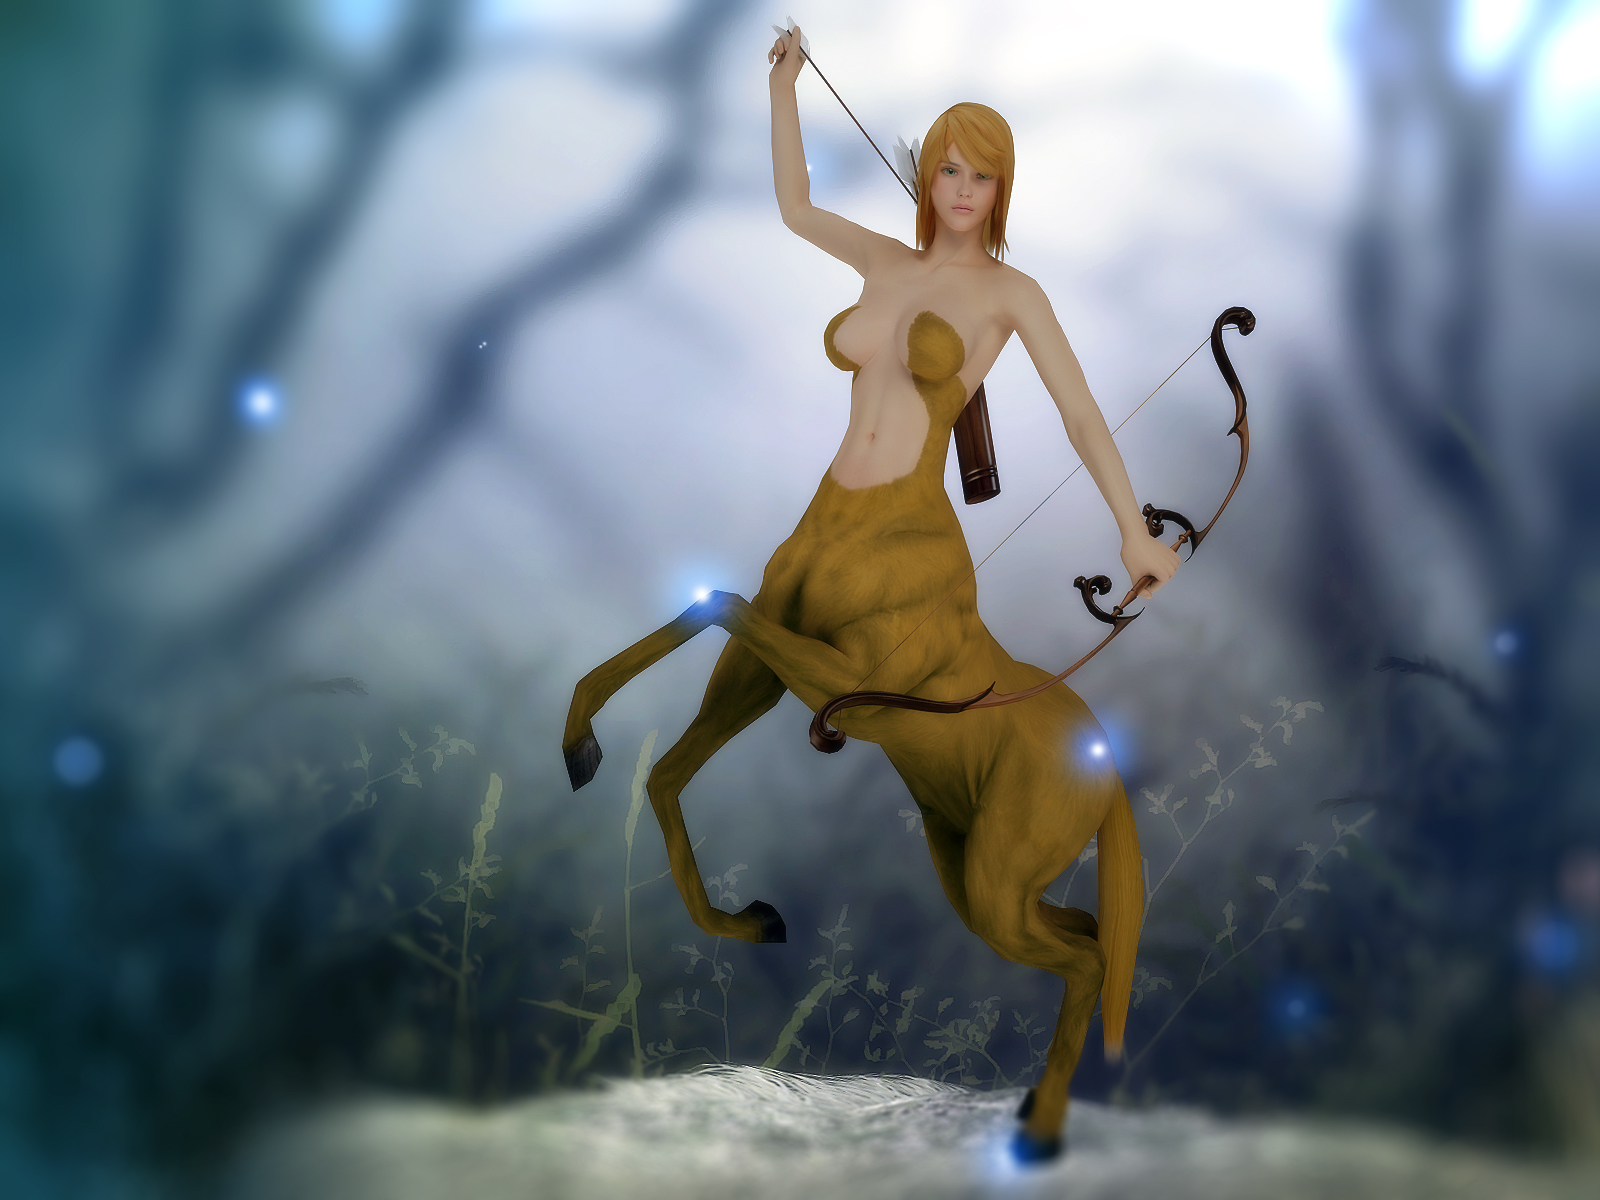 Free fantasy female centaur wallpapers nude model